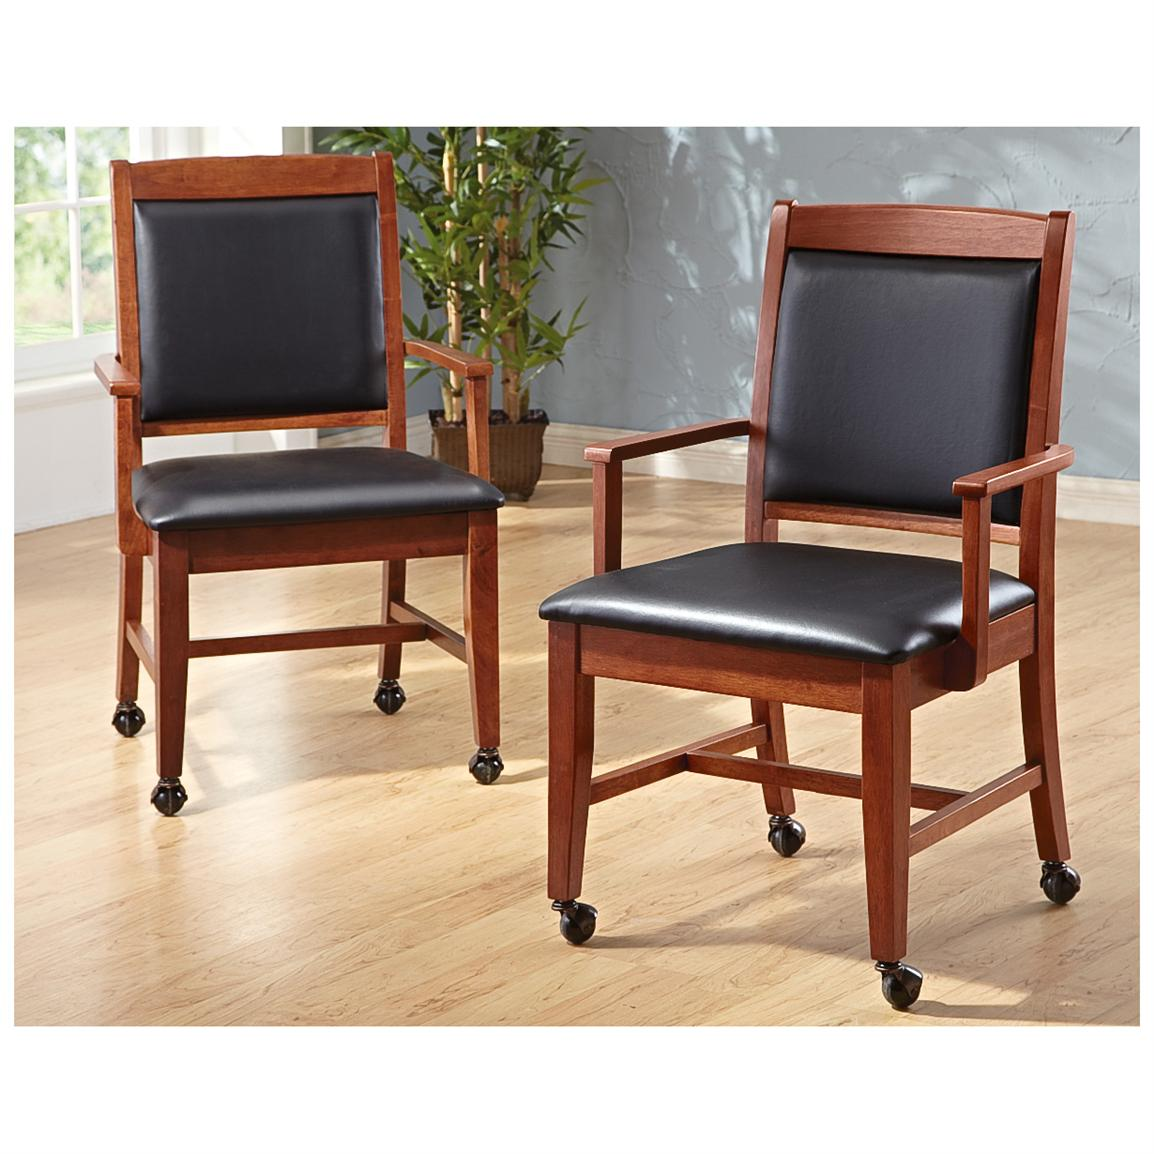 2 pk of caster chairs cherry 231902 kitchen dining stools at sportsman 39 s guide. Black Bedroom Furniture Sets. Home Design Ideas